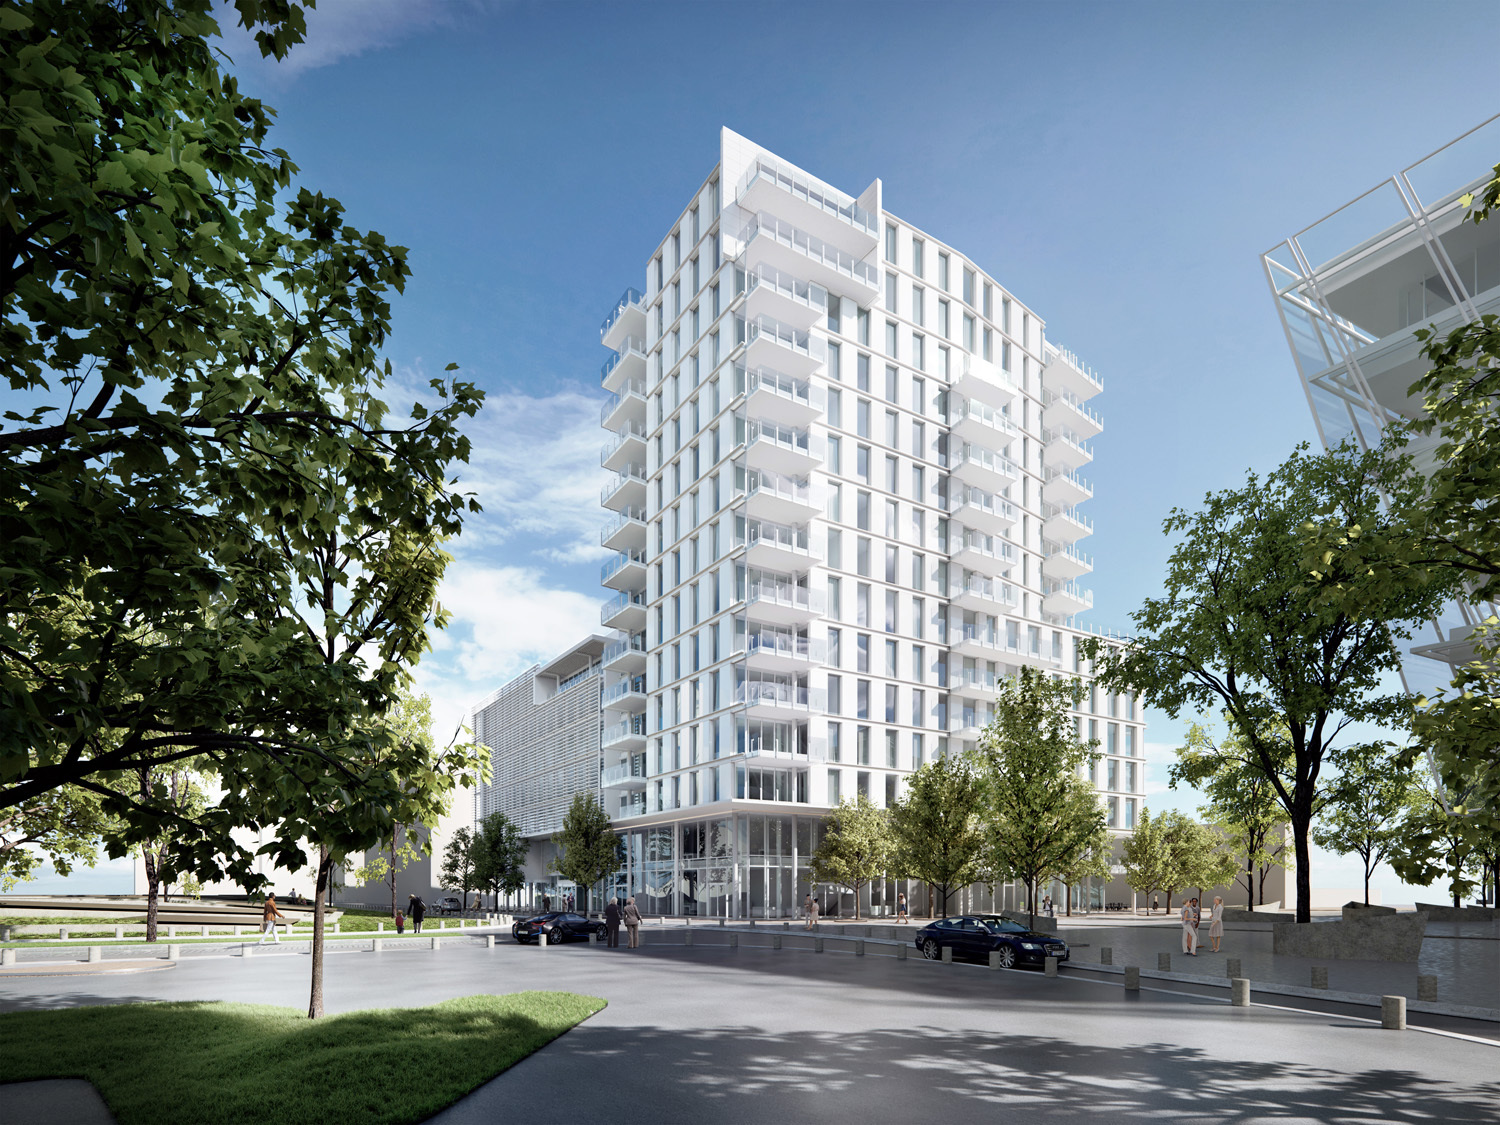 Richard Meier Partners Designs Waterfront Mixed Use